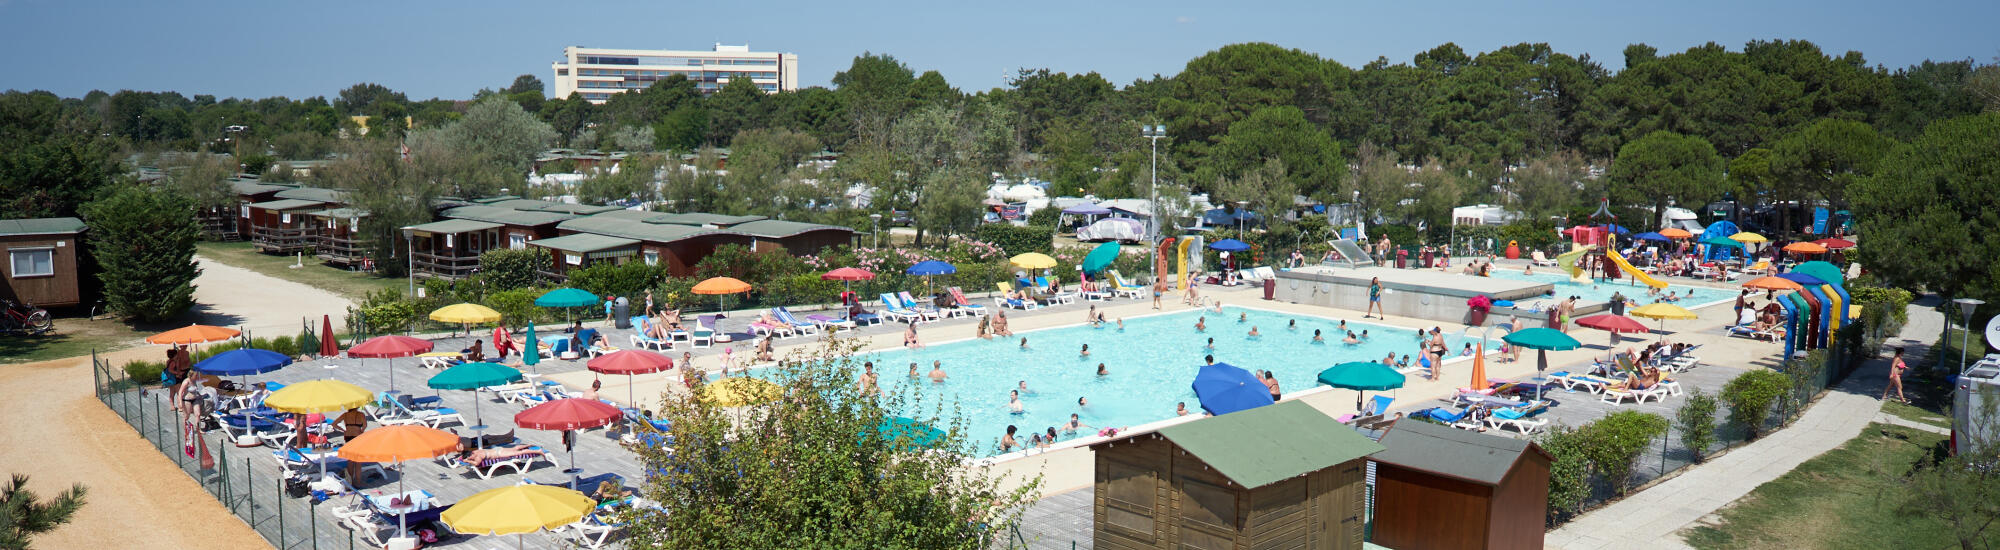 July in Bibione in a mobile home or glamping tent in a seaside camping village